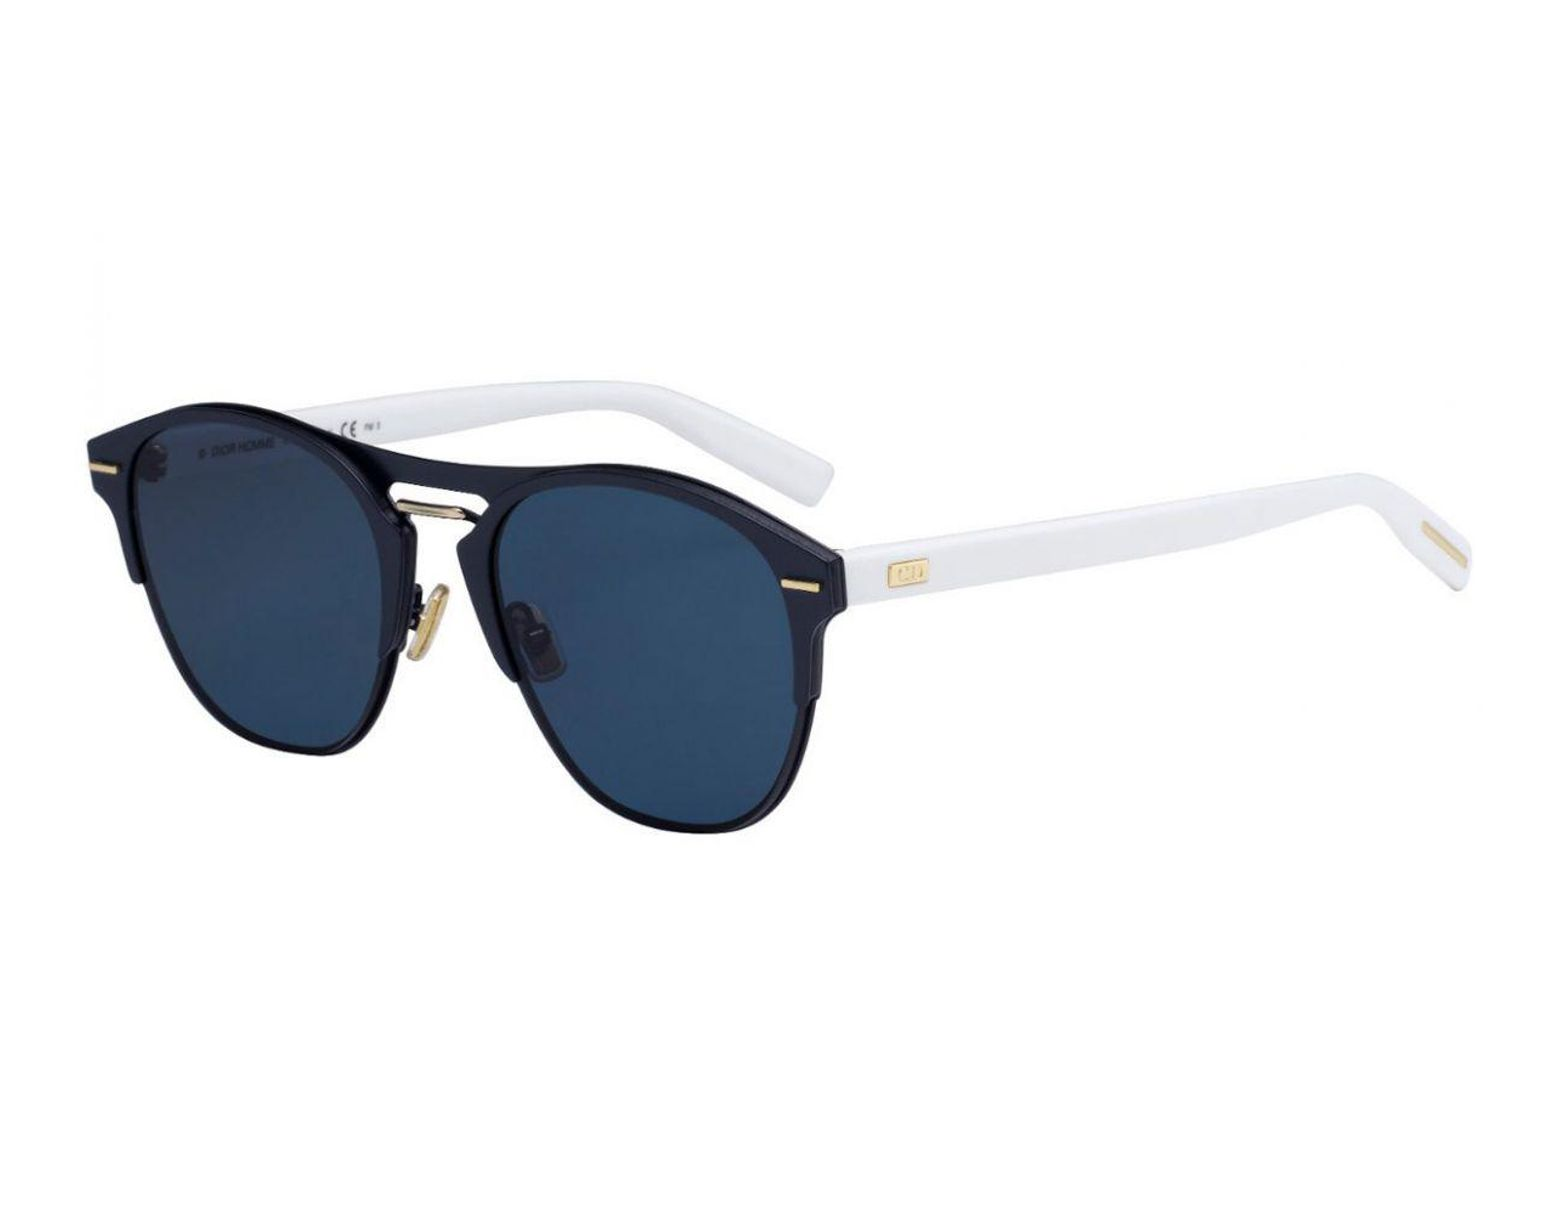 41ef63c76 Dior Homme Dior Chrono Black And White Frames With Black Lenses Sunglasses  Ze3/a9-65 in Black for Men - Lyst